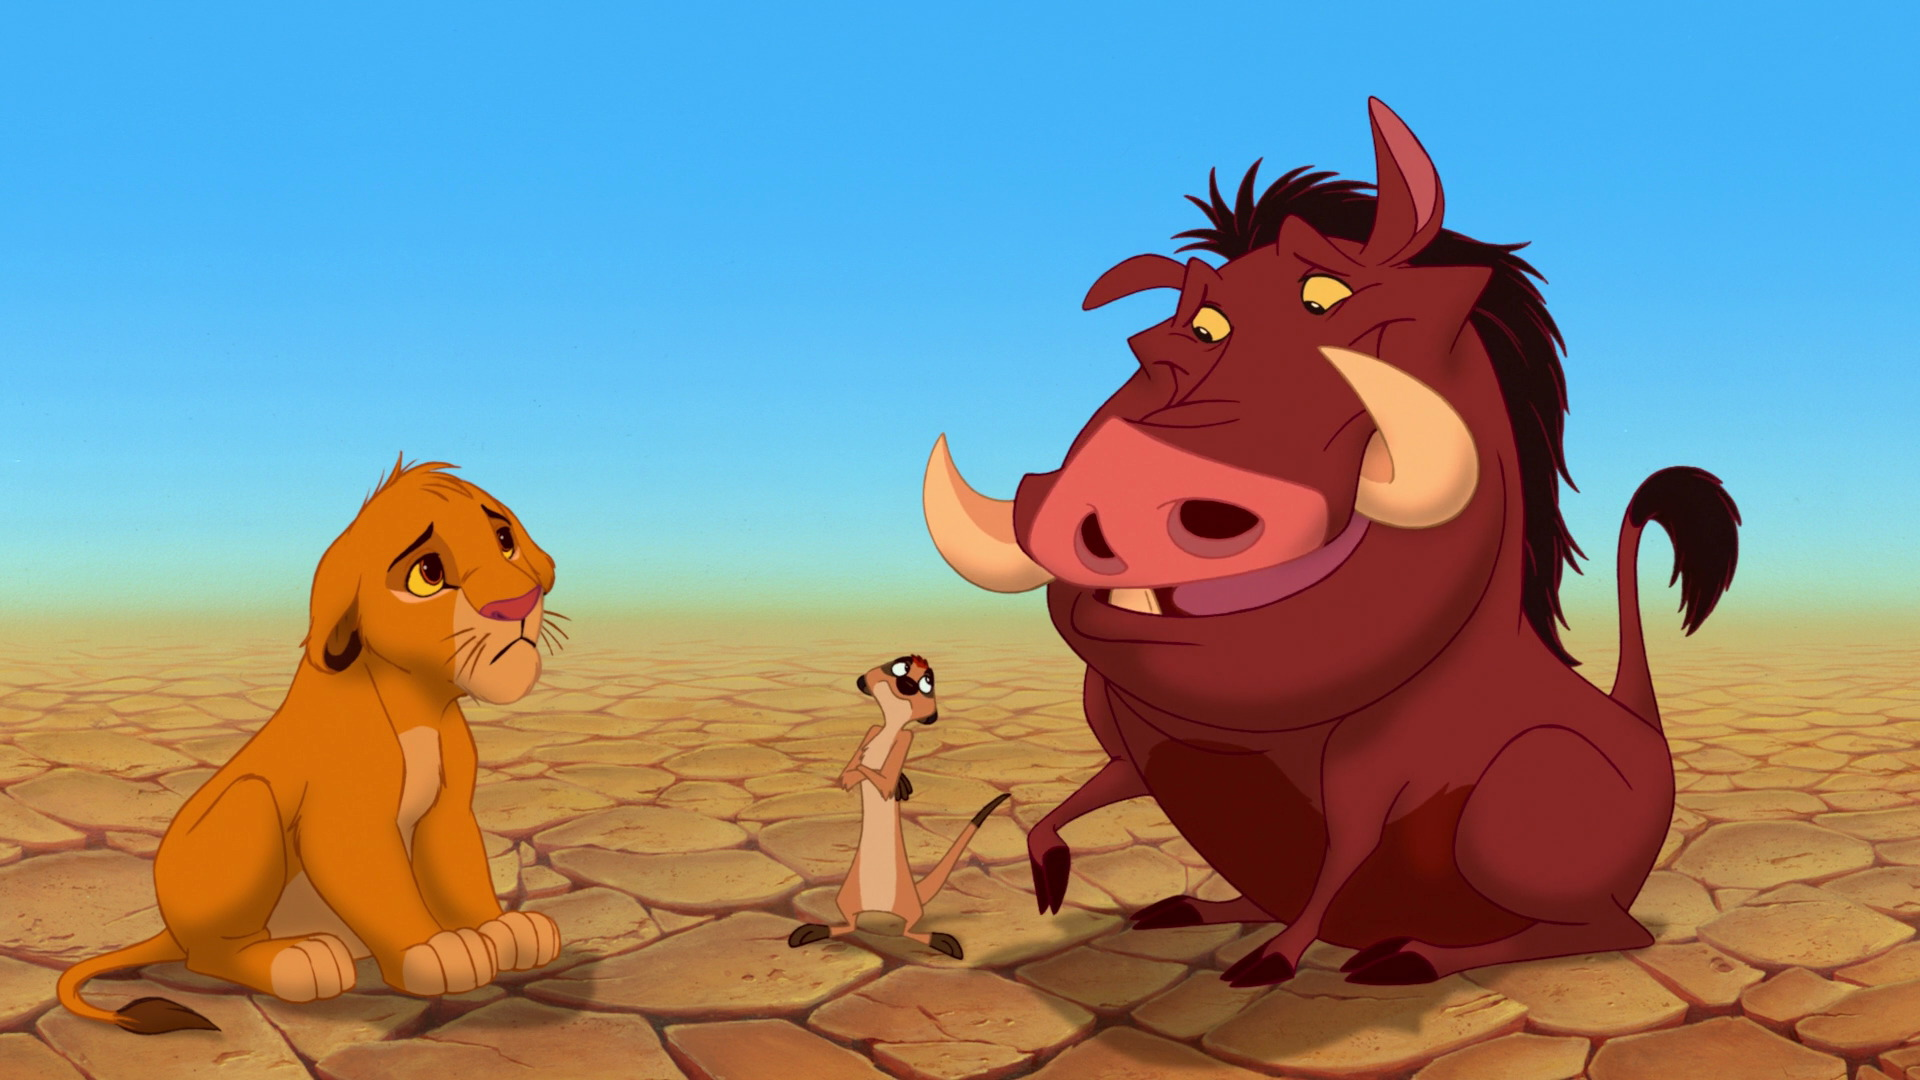 Hakuna Matata Seth Rogen And Billy Eicher To Voice Pumbaa